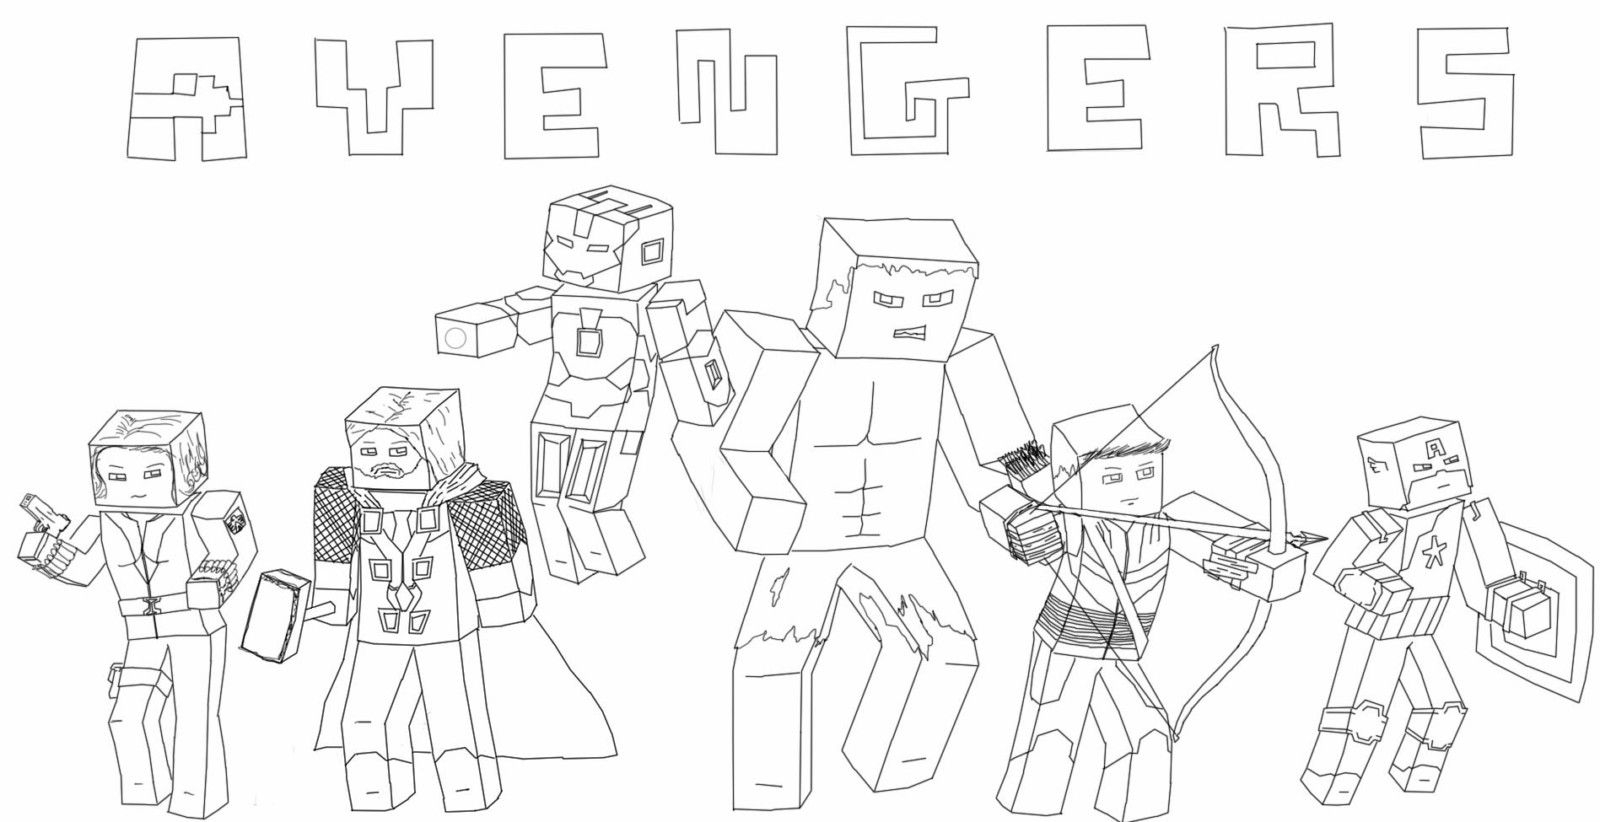 Mine Craft Coloring Pages Minecraft Animal Printable Rhentitlementtrap: Minecraft Animal Coloring Pages At Baymontmadison.com